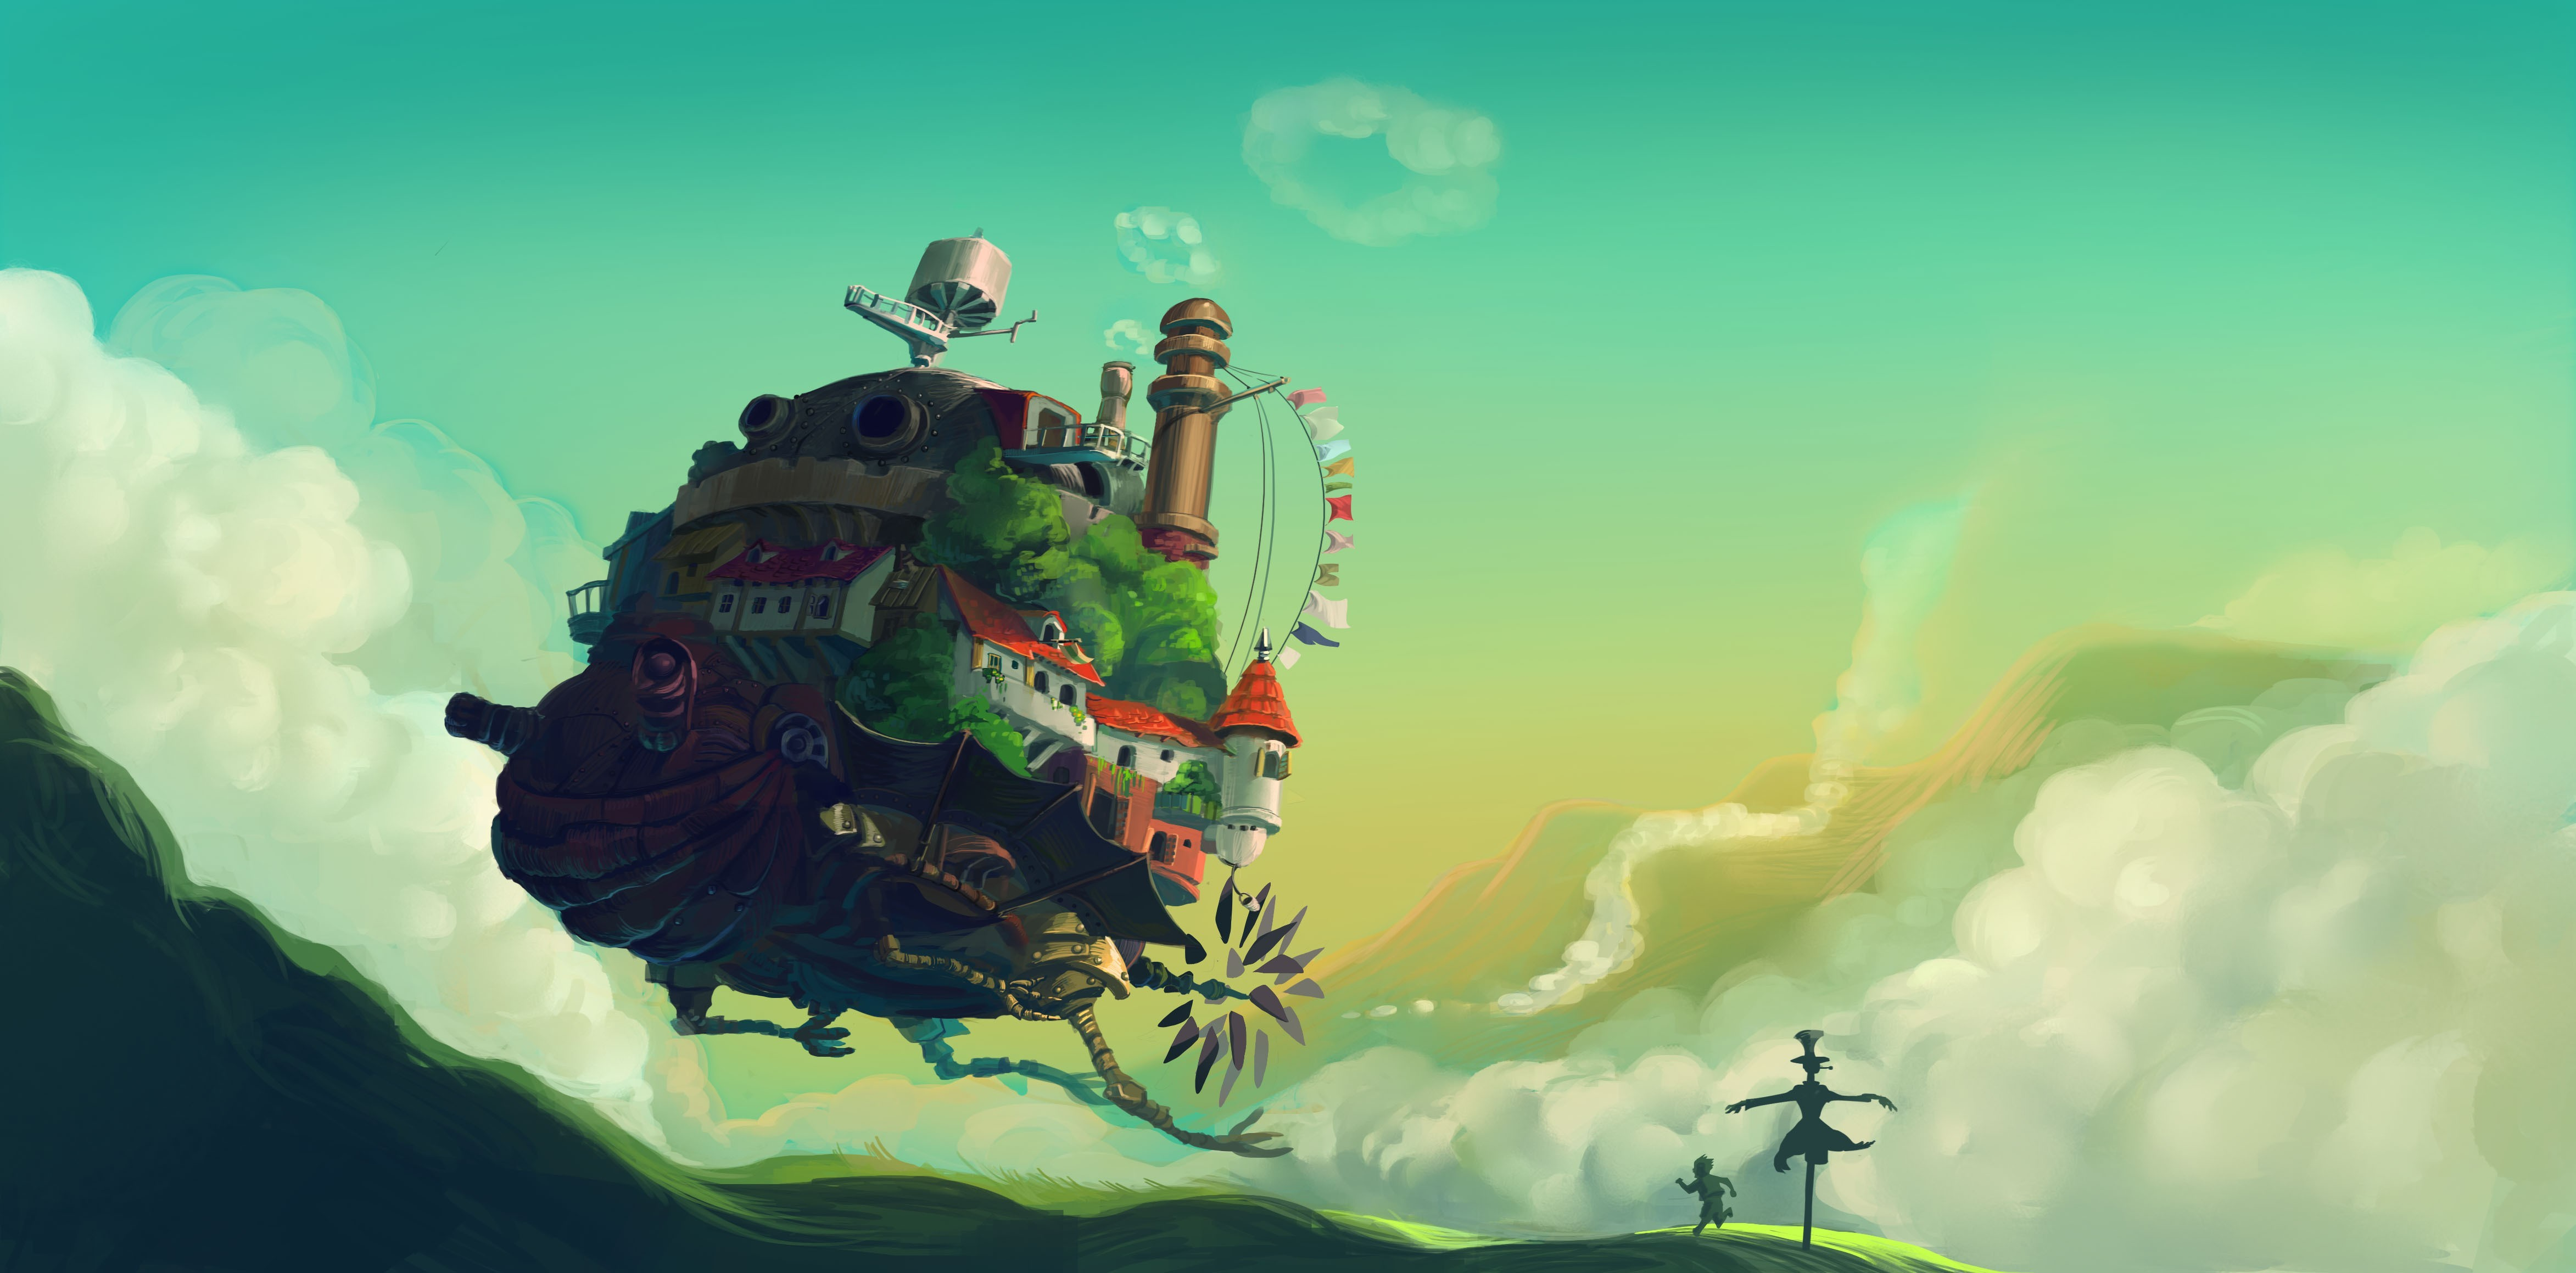 Howls Moving Castle Hd Wallpaper Hayao Miyazaki Howls Moving Castle Wallpapers Hd